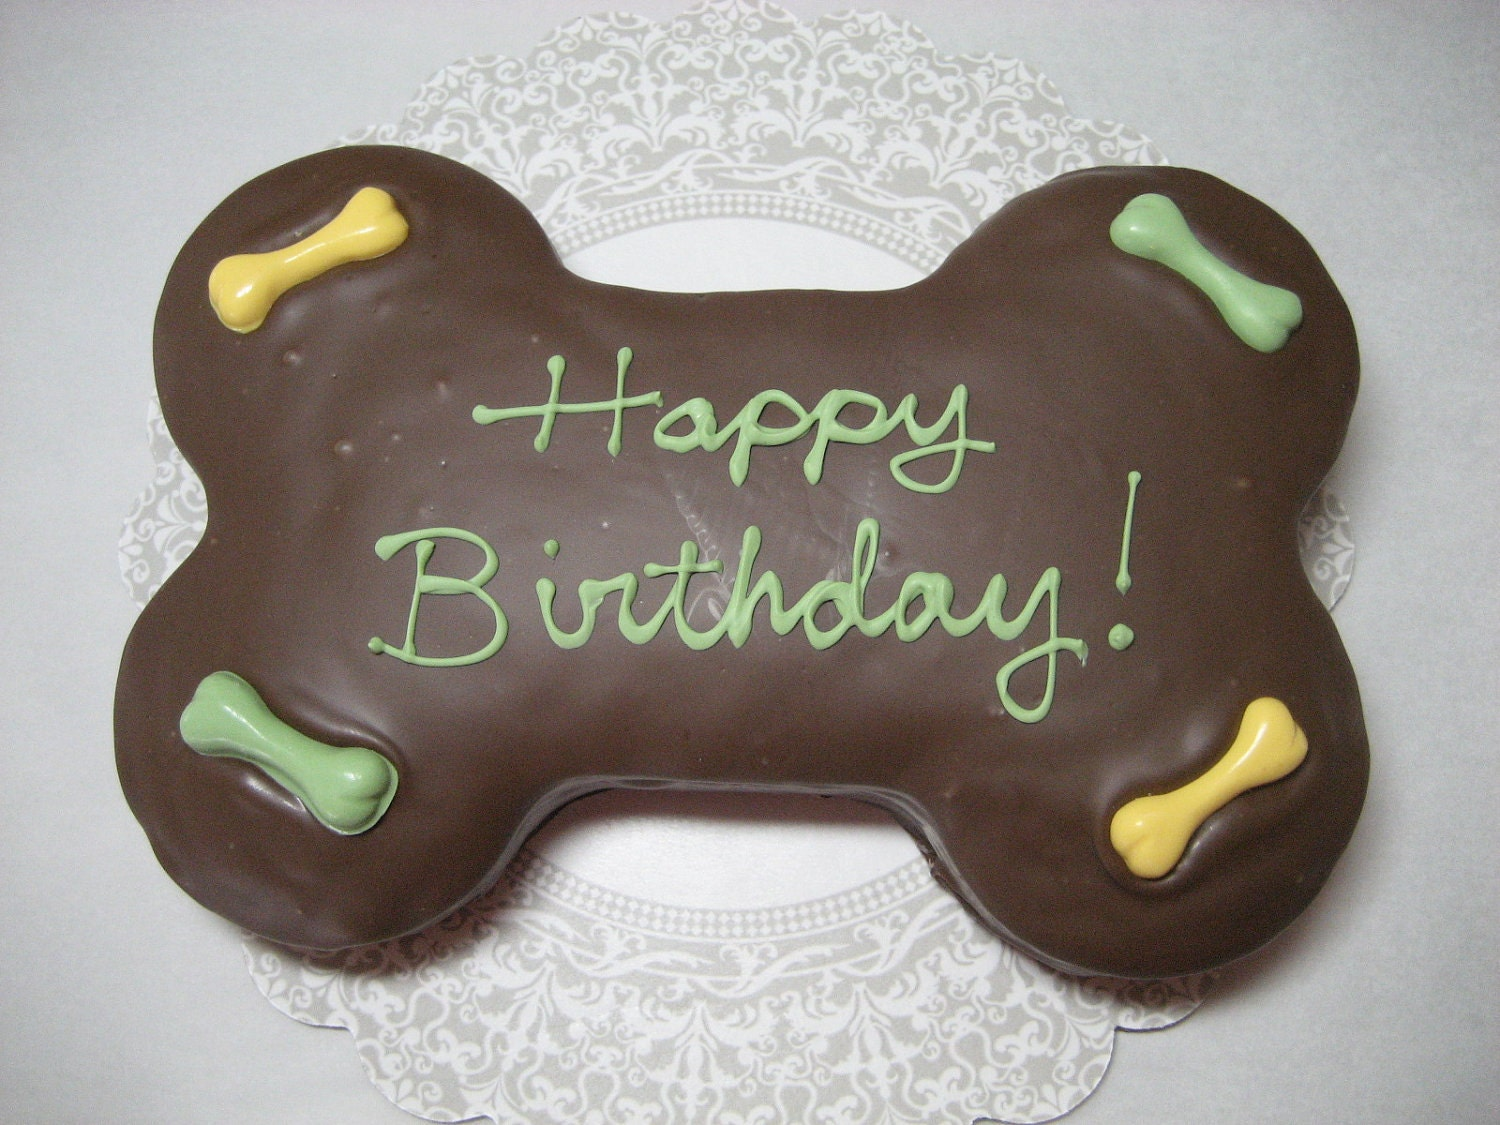 Birthday Cake Images Dogs : BIRTHDAY CAKE FOR DOGS - Fomanda Gasa